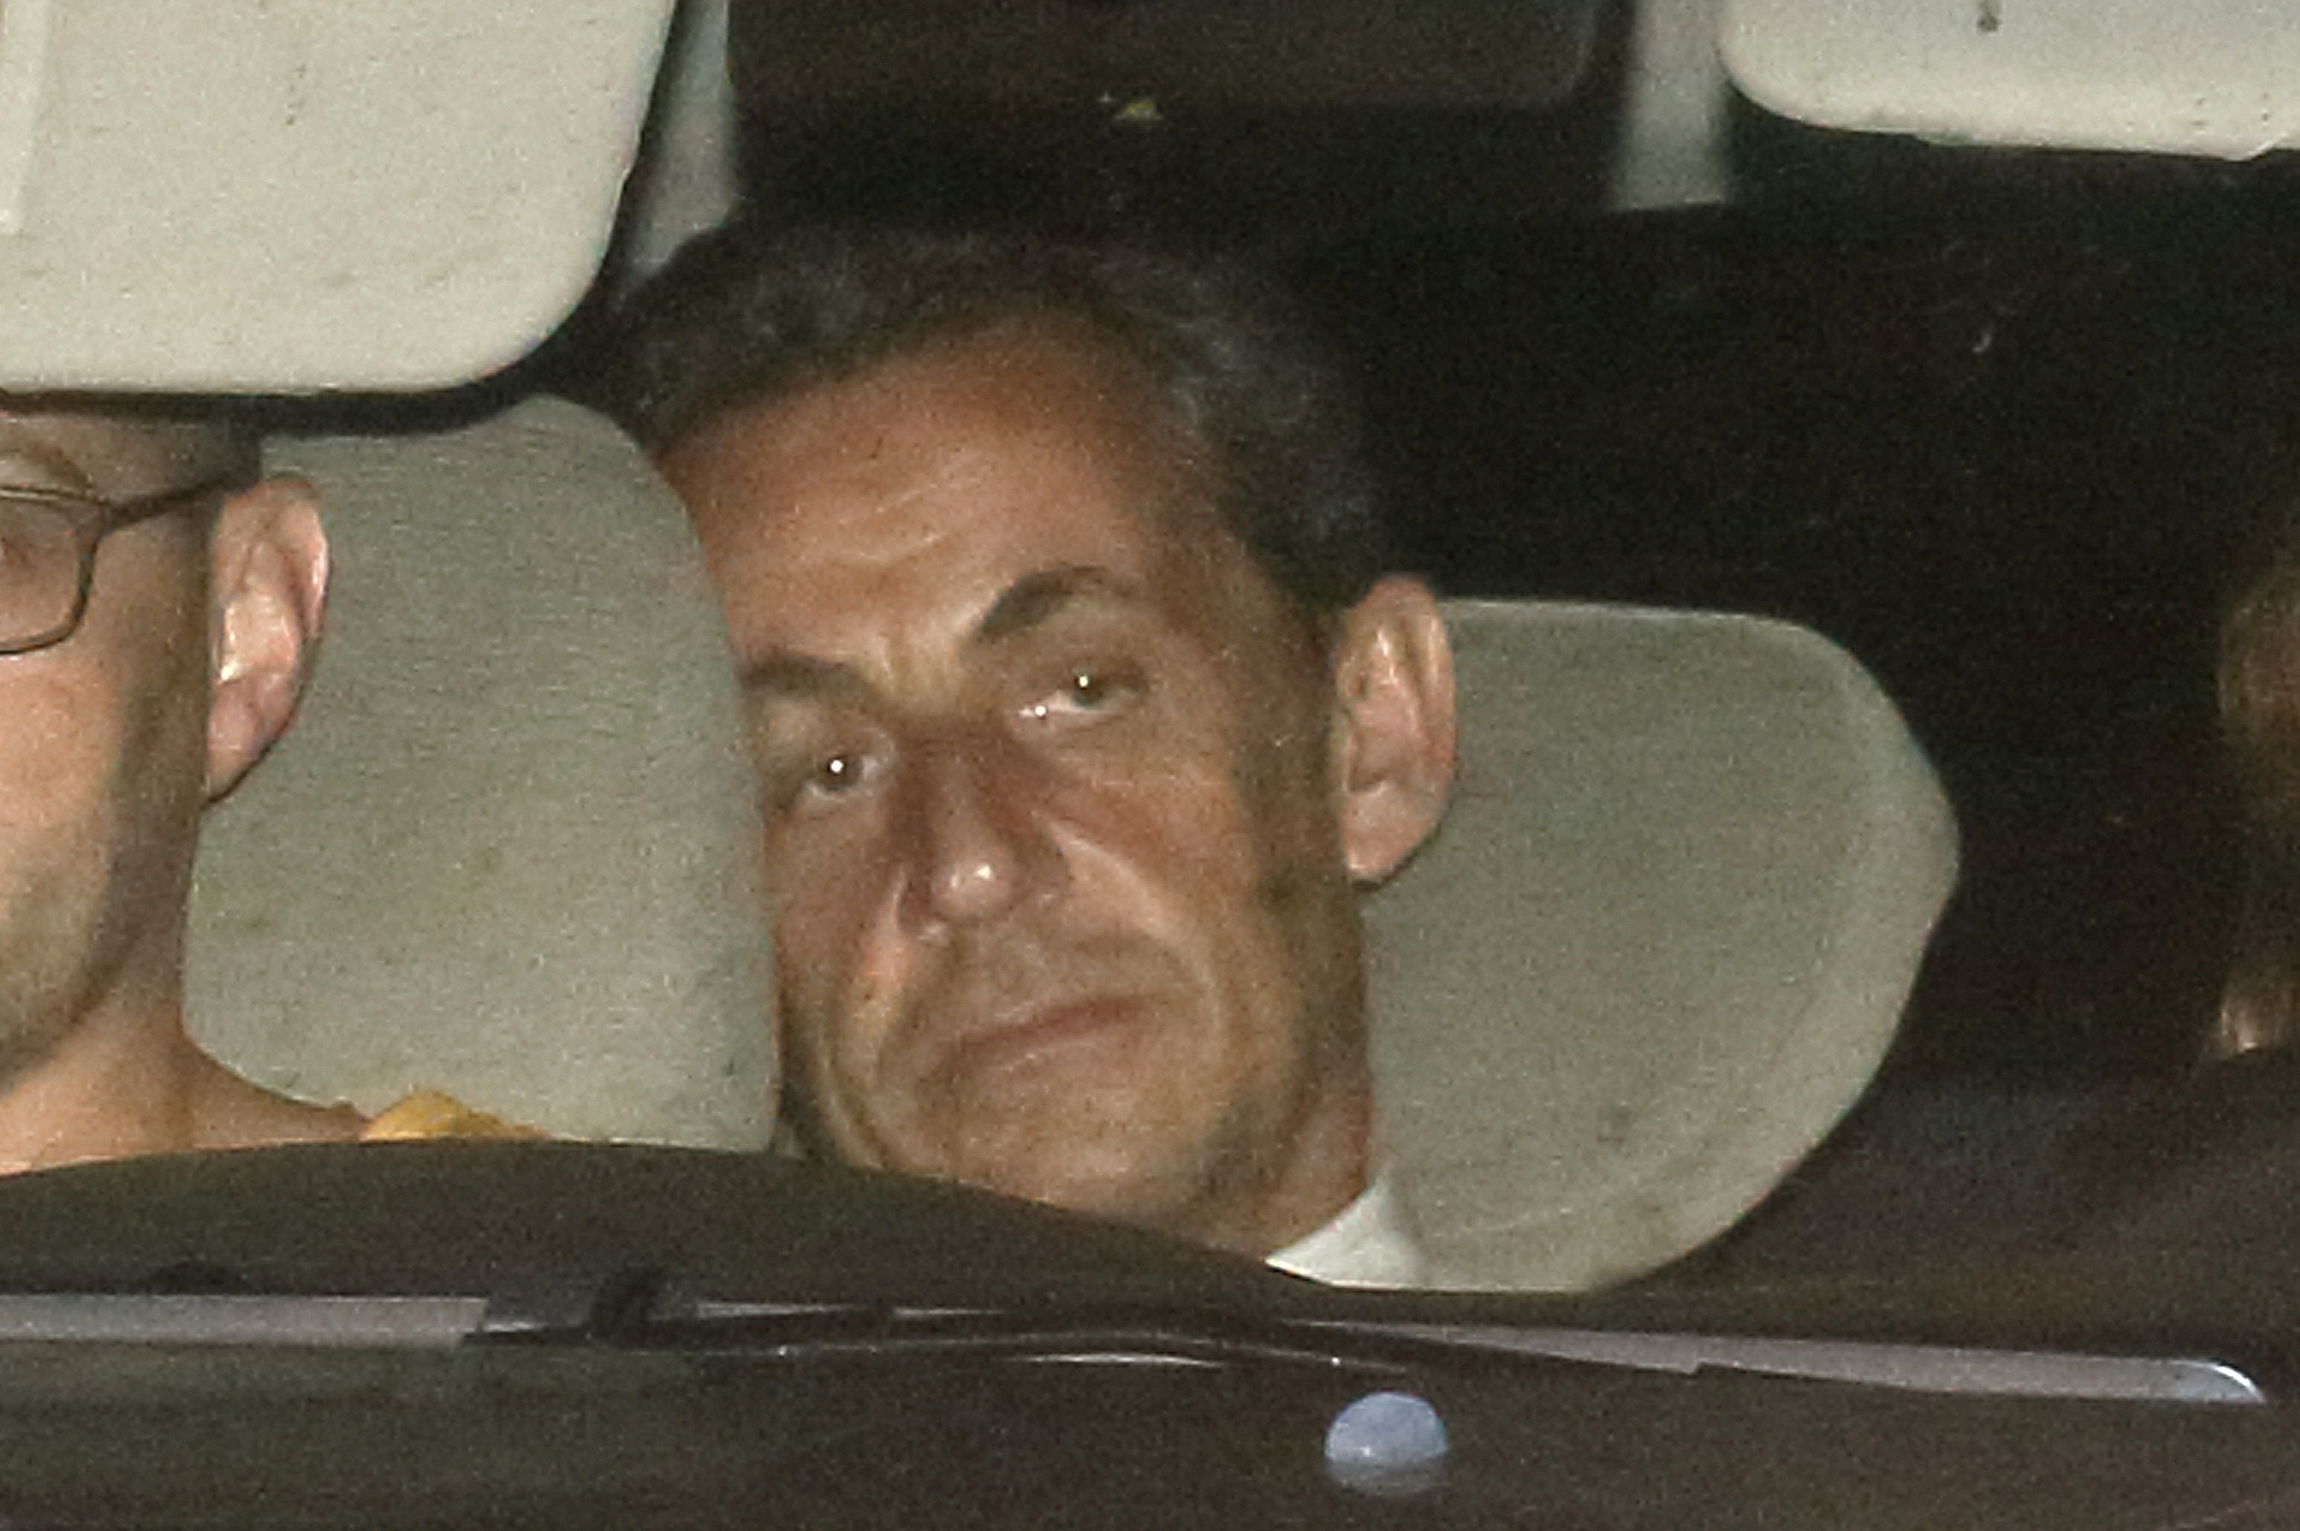 Former French President Nicolas Sarkozy arrives with police by car at the financial investigation unit in Paris to be presented to a judge late July 1, 2014. Former French President Sarkozy was held for questioning for 15 hours on Tuesday over suspicions he used his influence to secure leaked details of an inquiry into alleged irregularities in his 2007 election campaign.